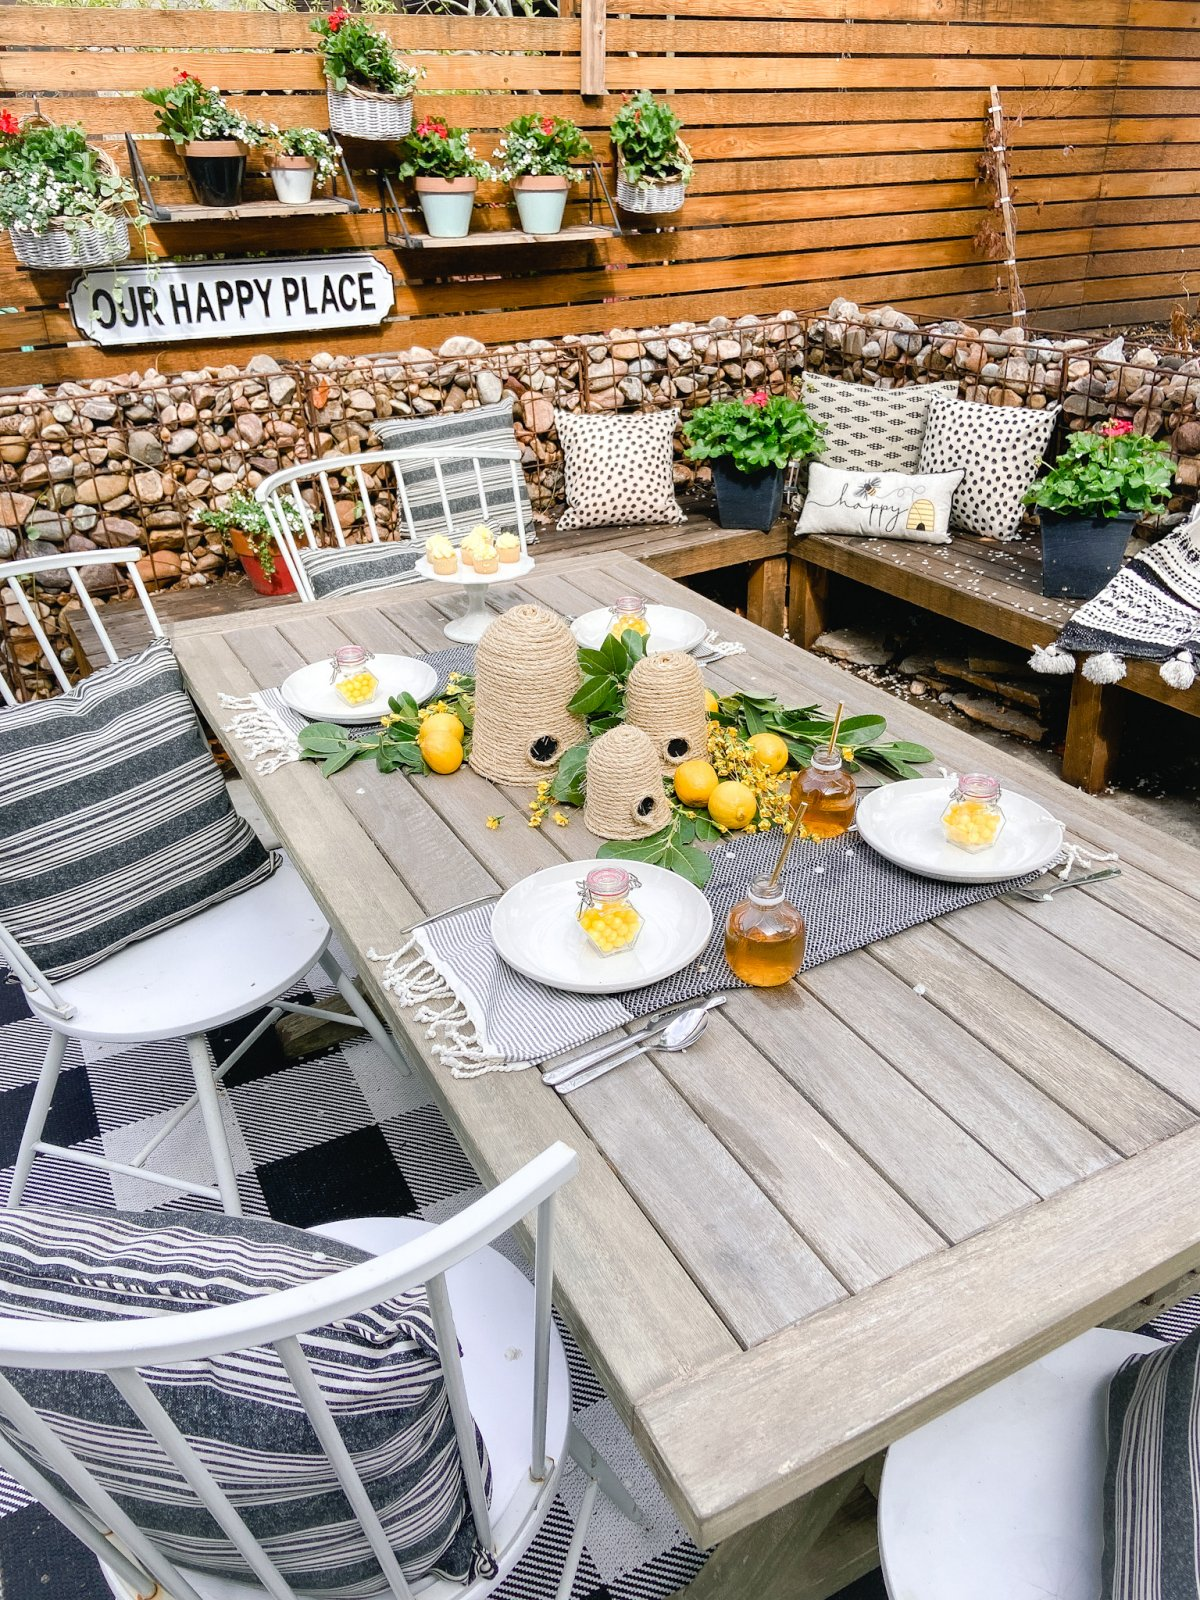 DIY Beehives and Beehive Backyard Inspo! Create cute and inexpensive beehives, add beehive pillows and create a hanging basket garden for a beautiful summer patio!